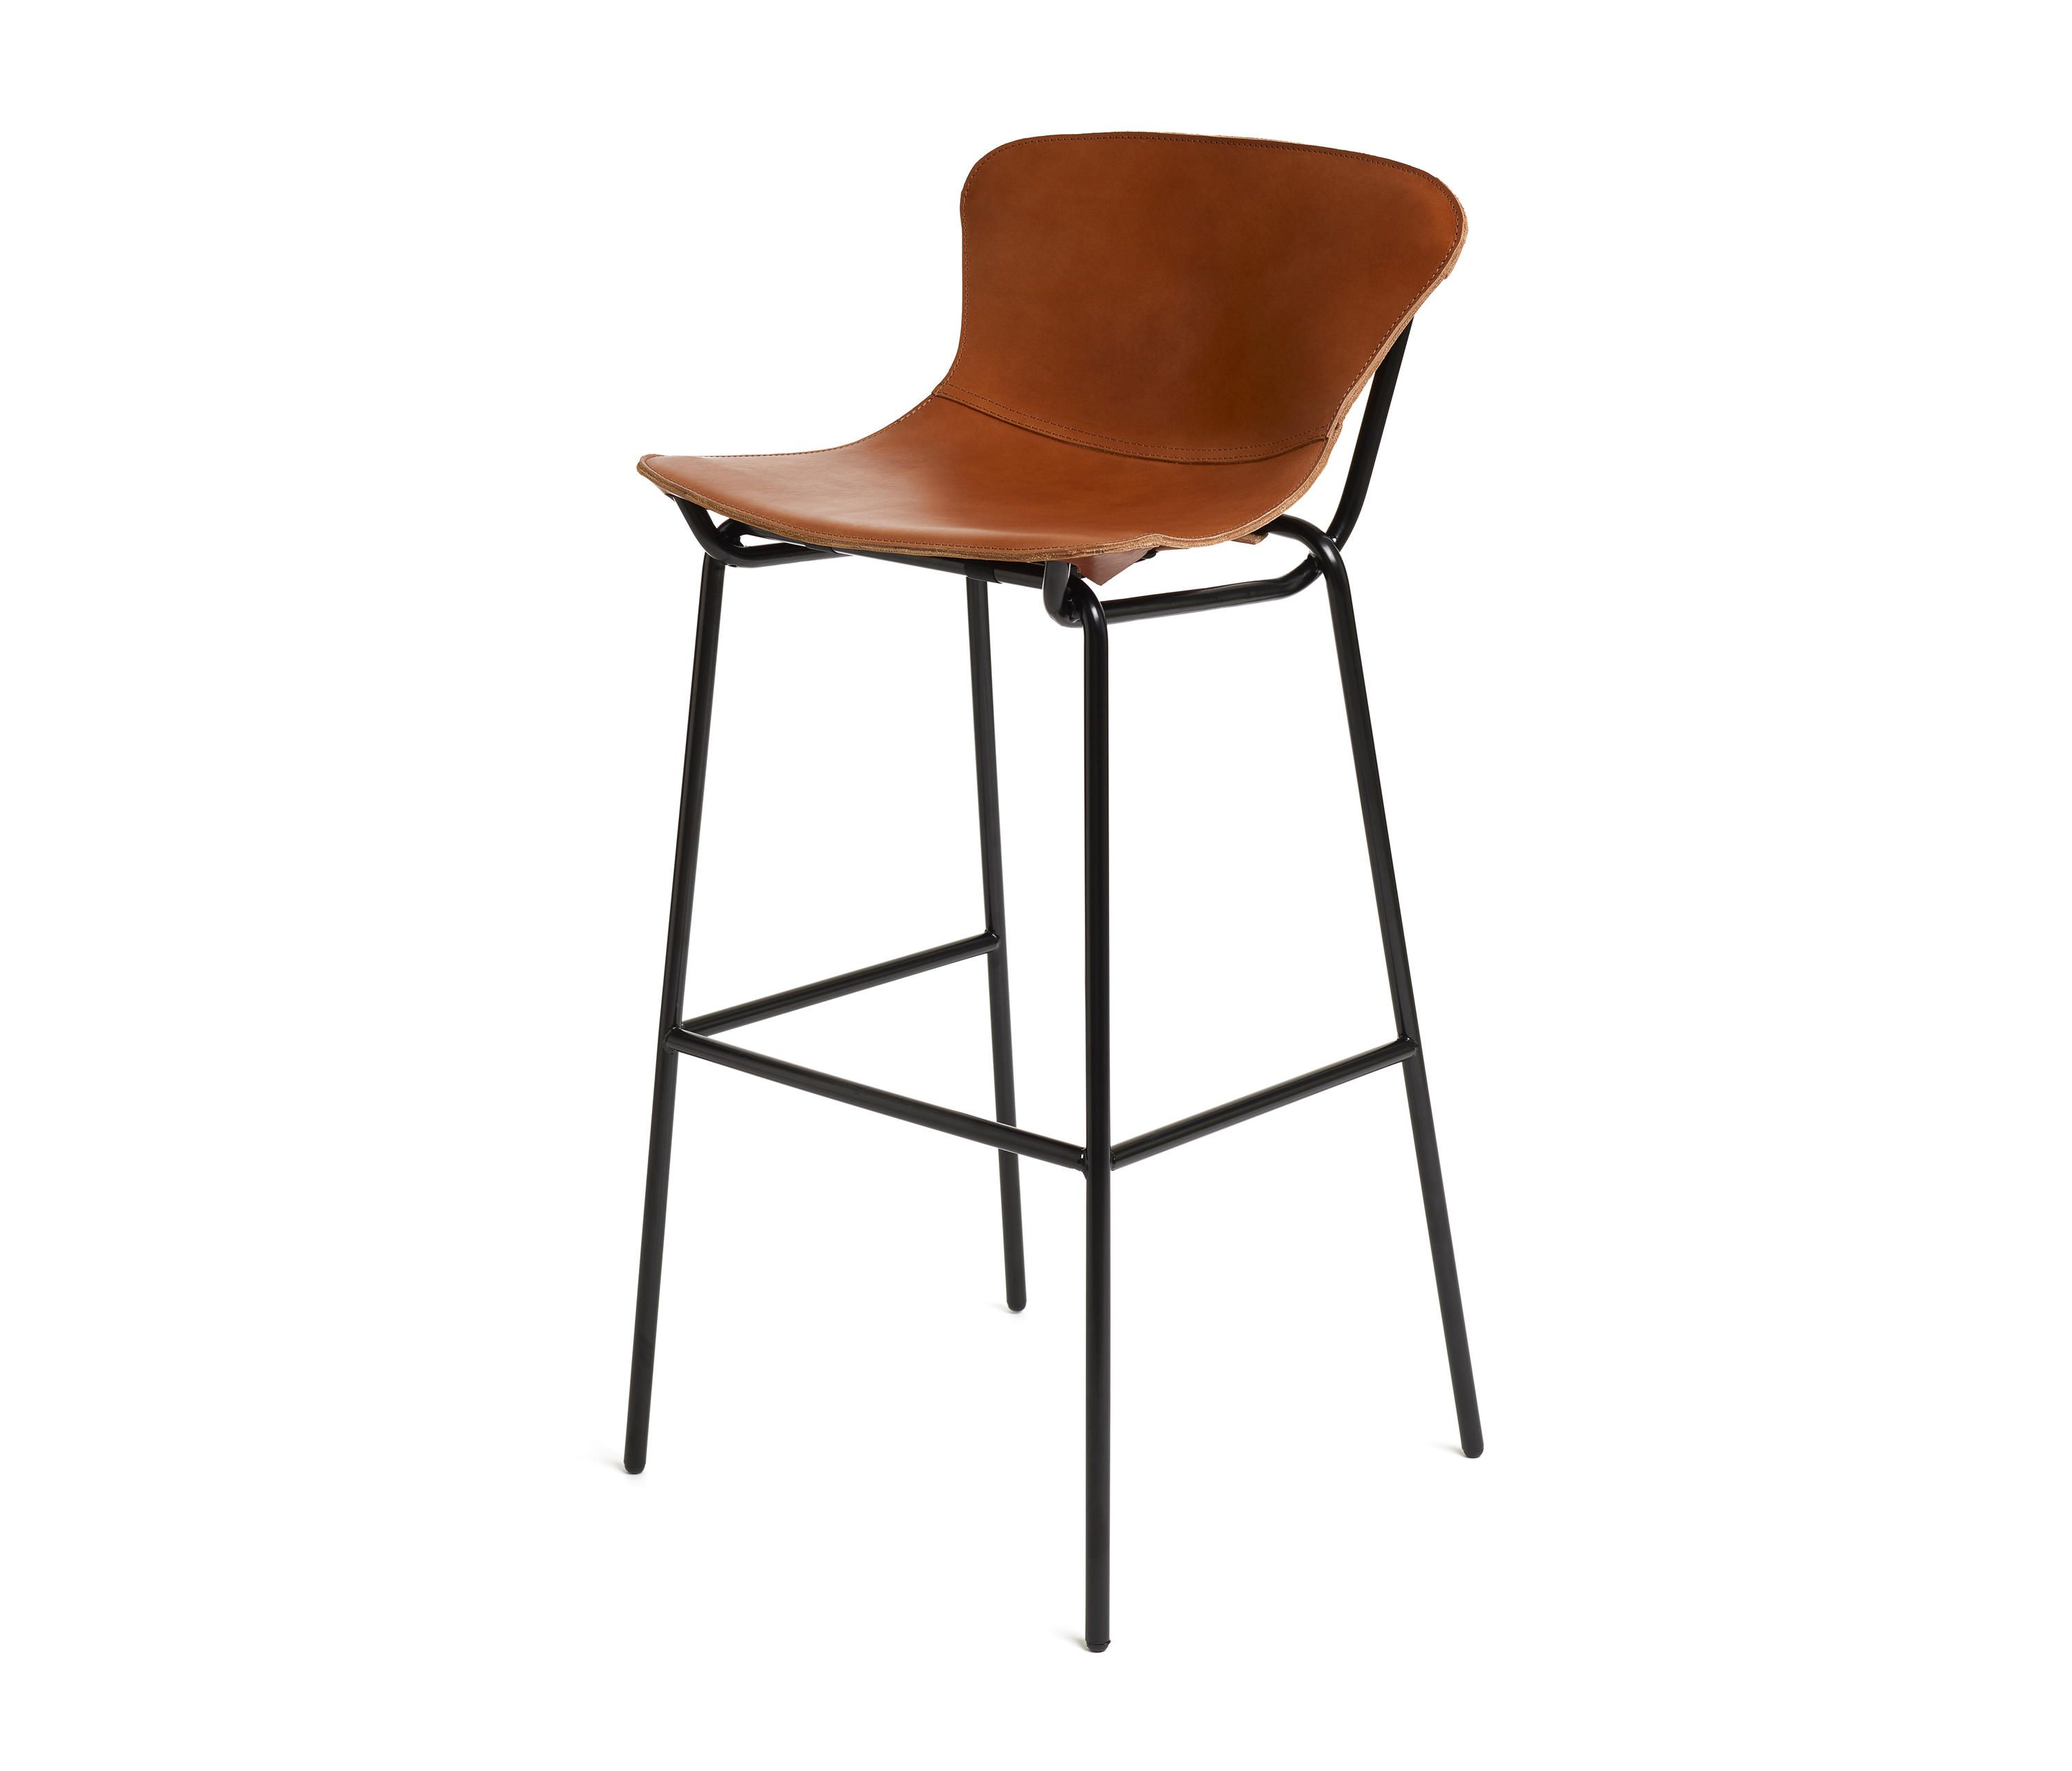 Hammock Bar  Bar Stools From David Design - Architonic